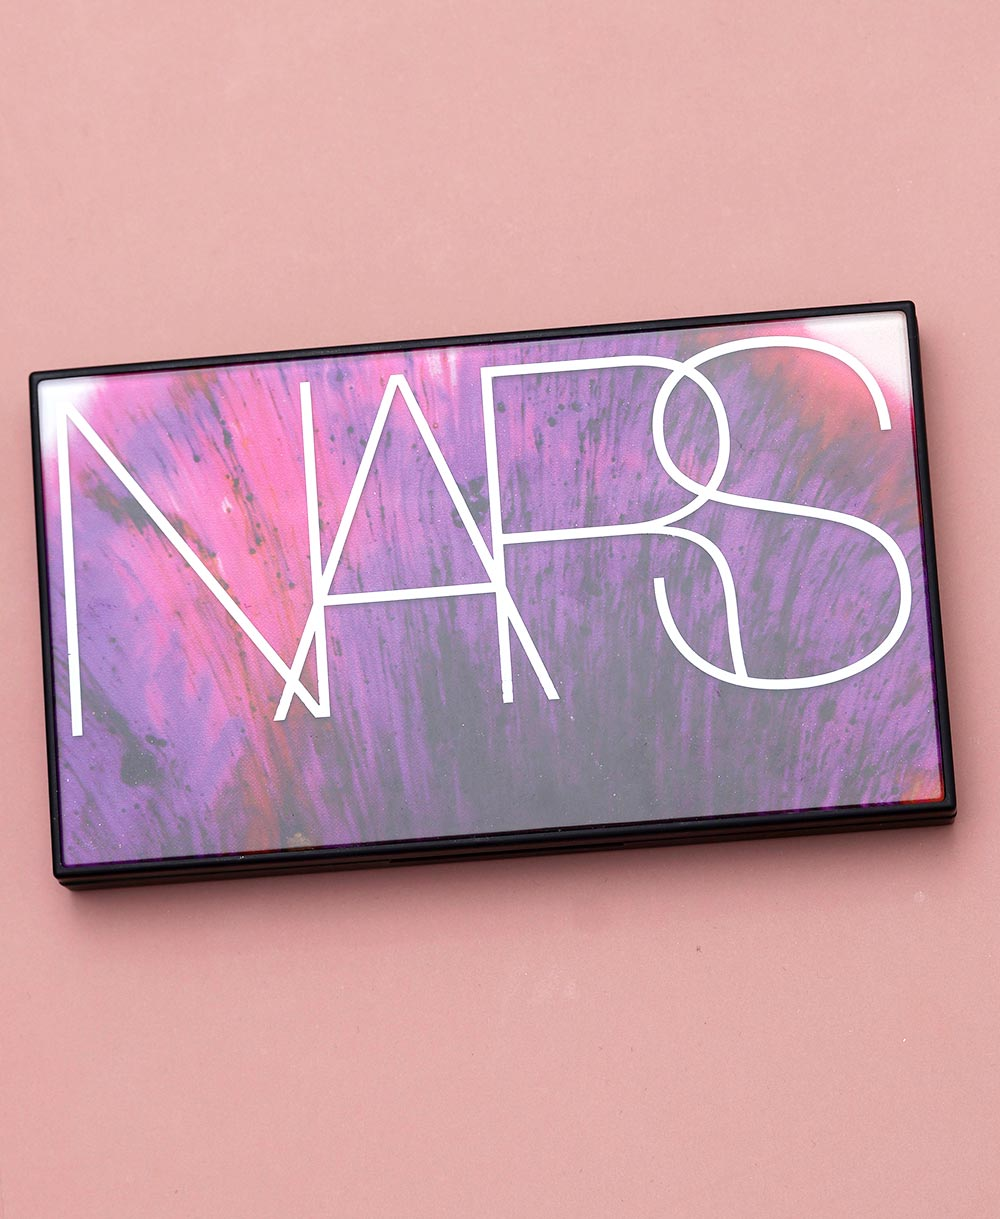 nars ignited palette packaging